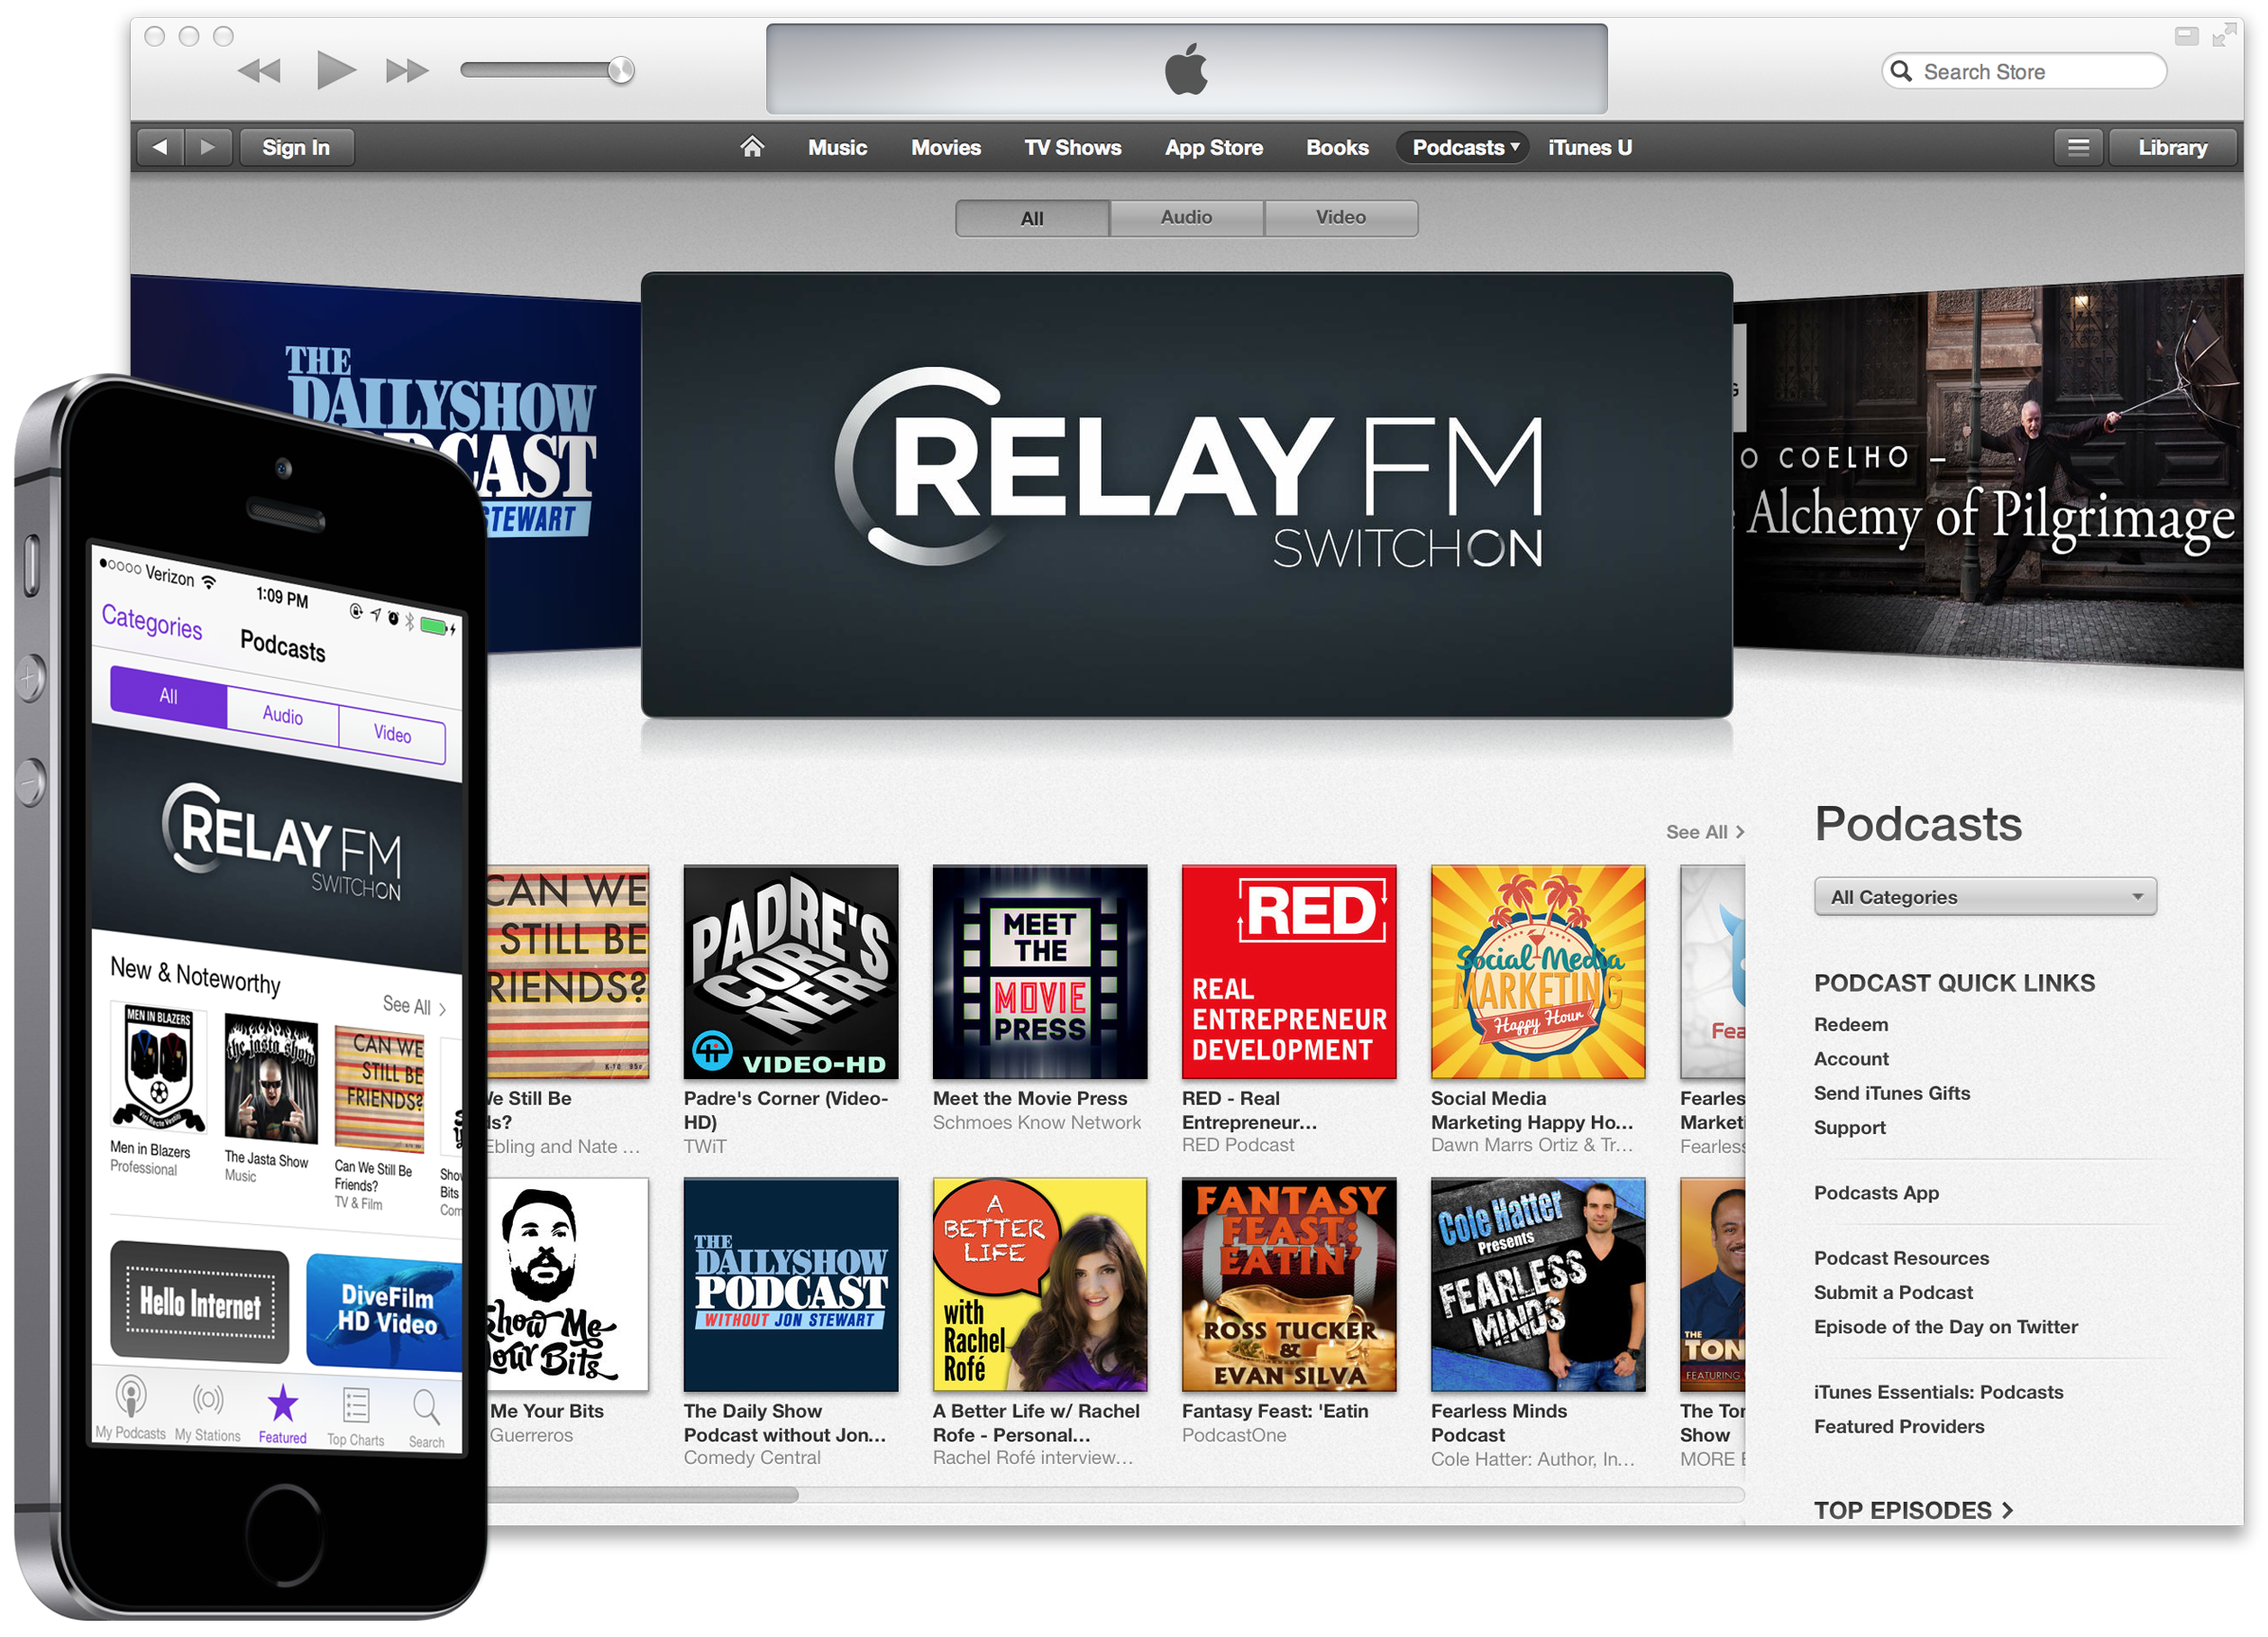 Relay FM in iTunes